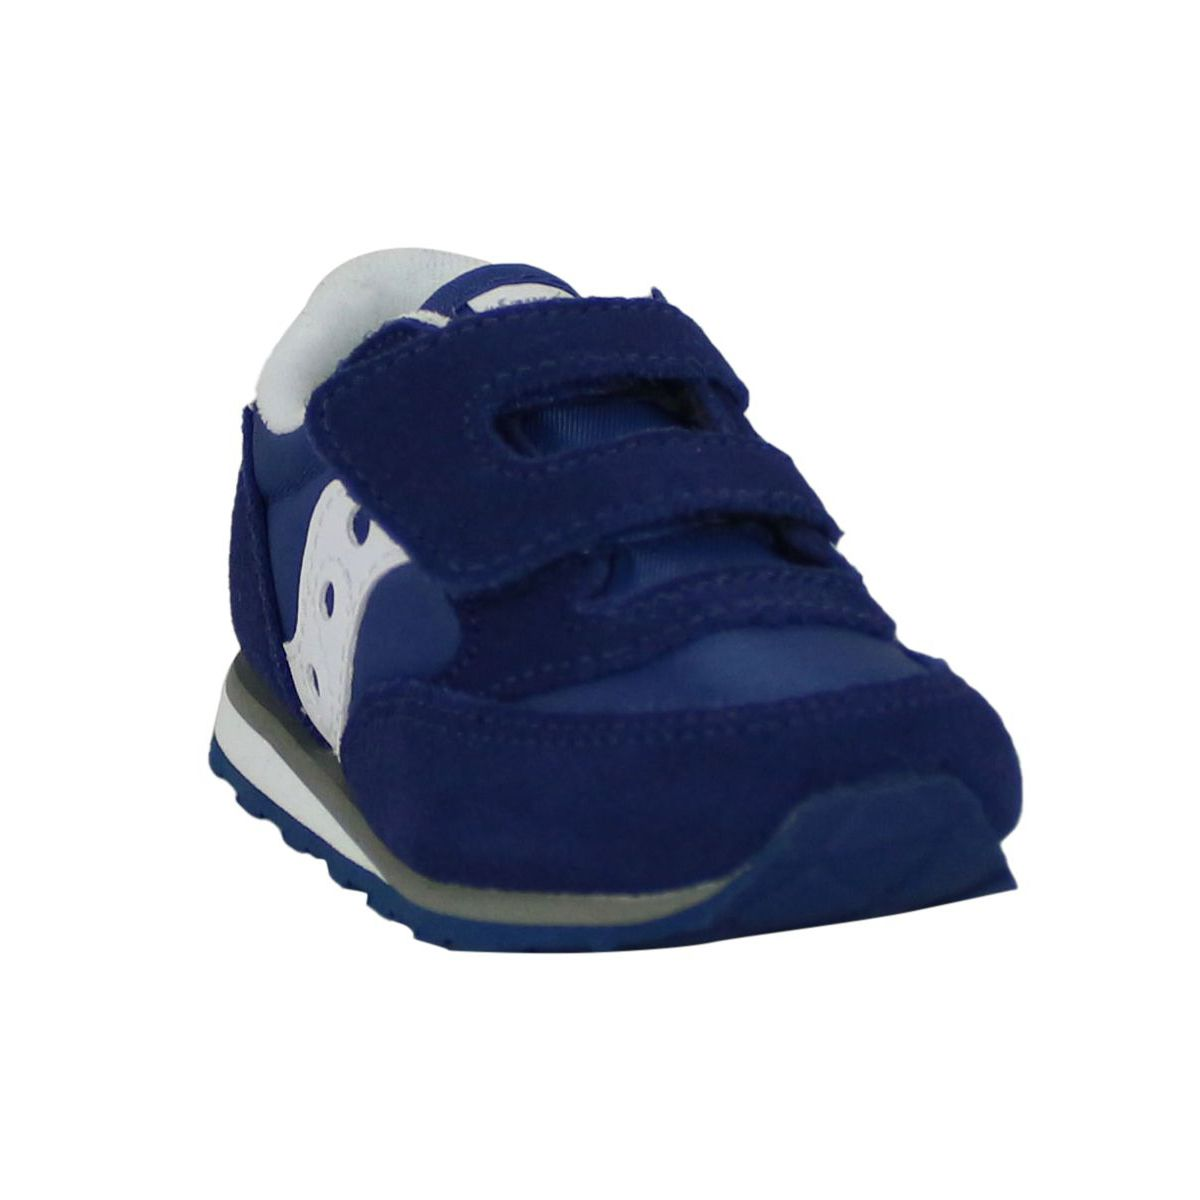 Jazz or baby sneakers with rips Blue Saucony